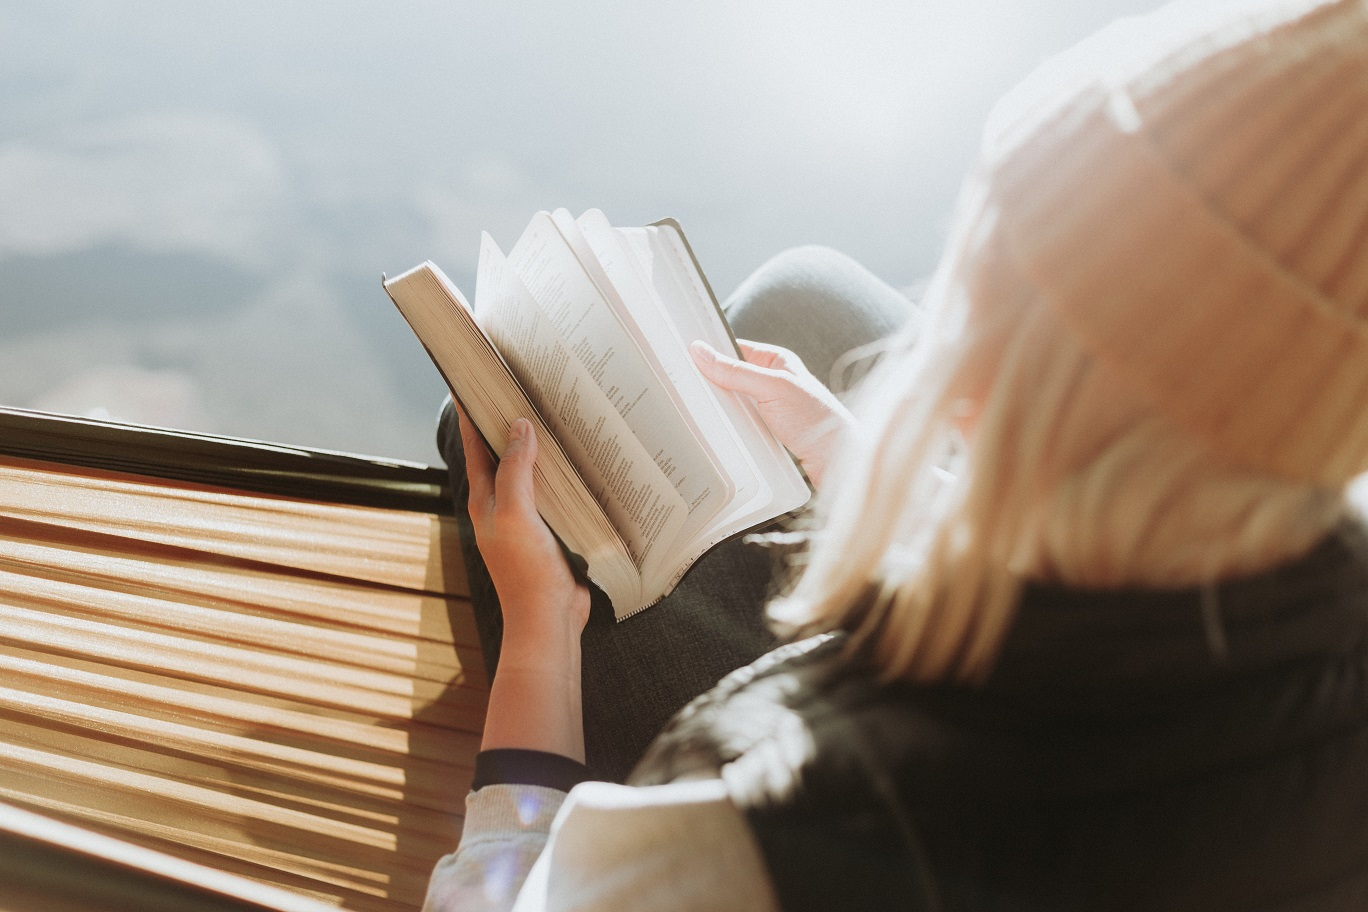 Woman reading book. Photo by Priscilla Du Preez on Unsplash.